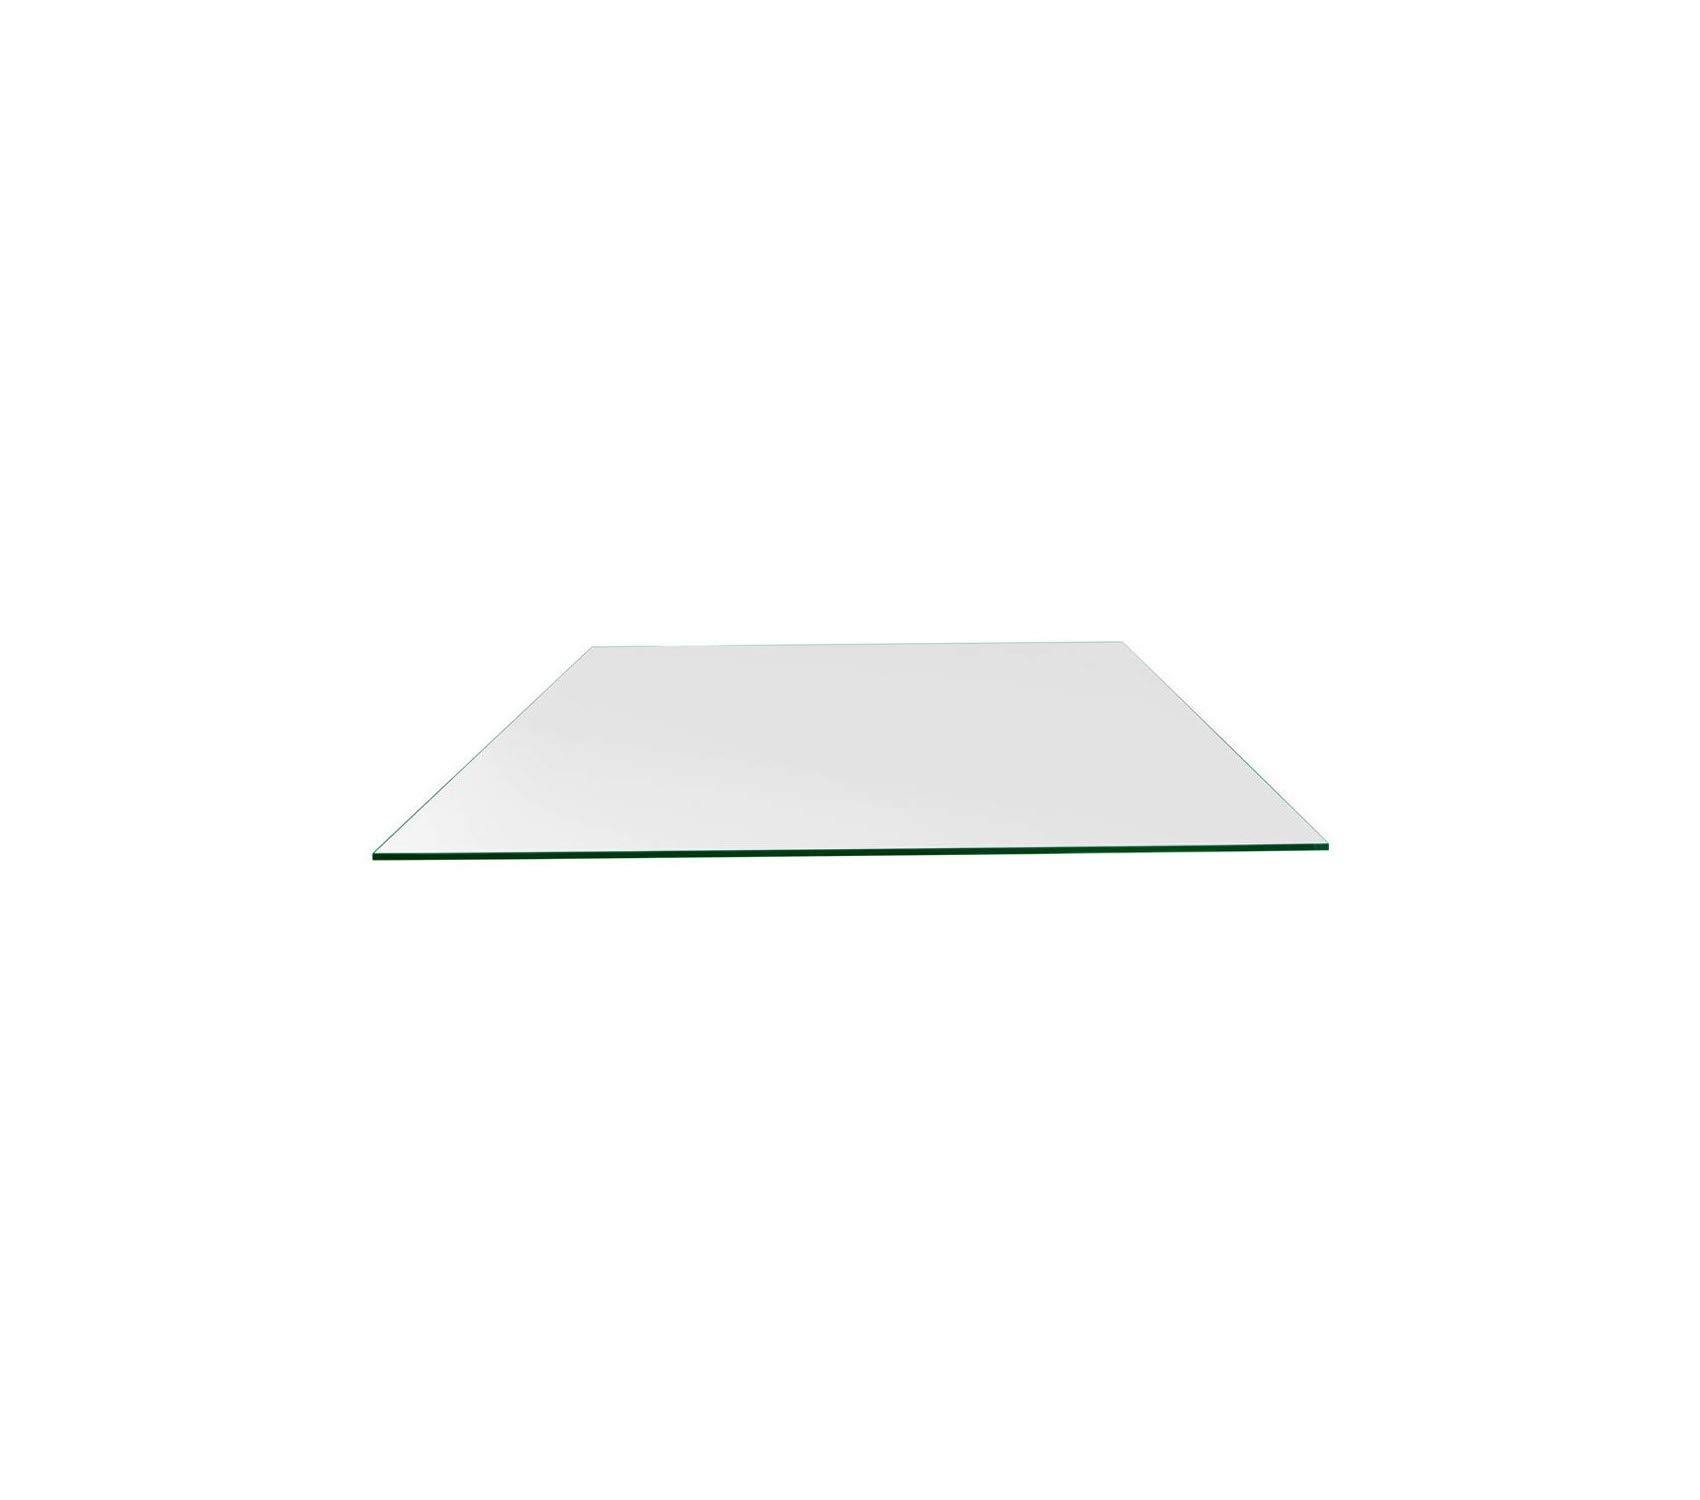 Wood & Style Patio Outdoor Garden Premium 24'' x 48'' Rectangle Glass Table Top 1/4'' Inch (6mm) Thick Flat Polish Edge Eased Corners, Tempered Clear